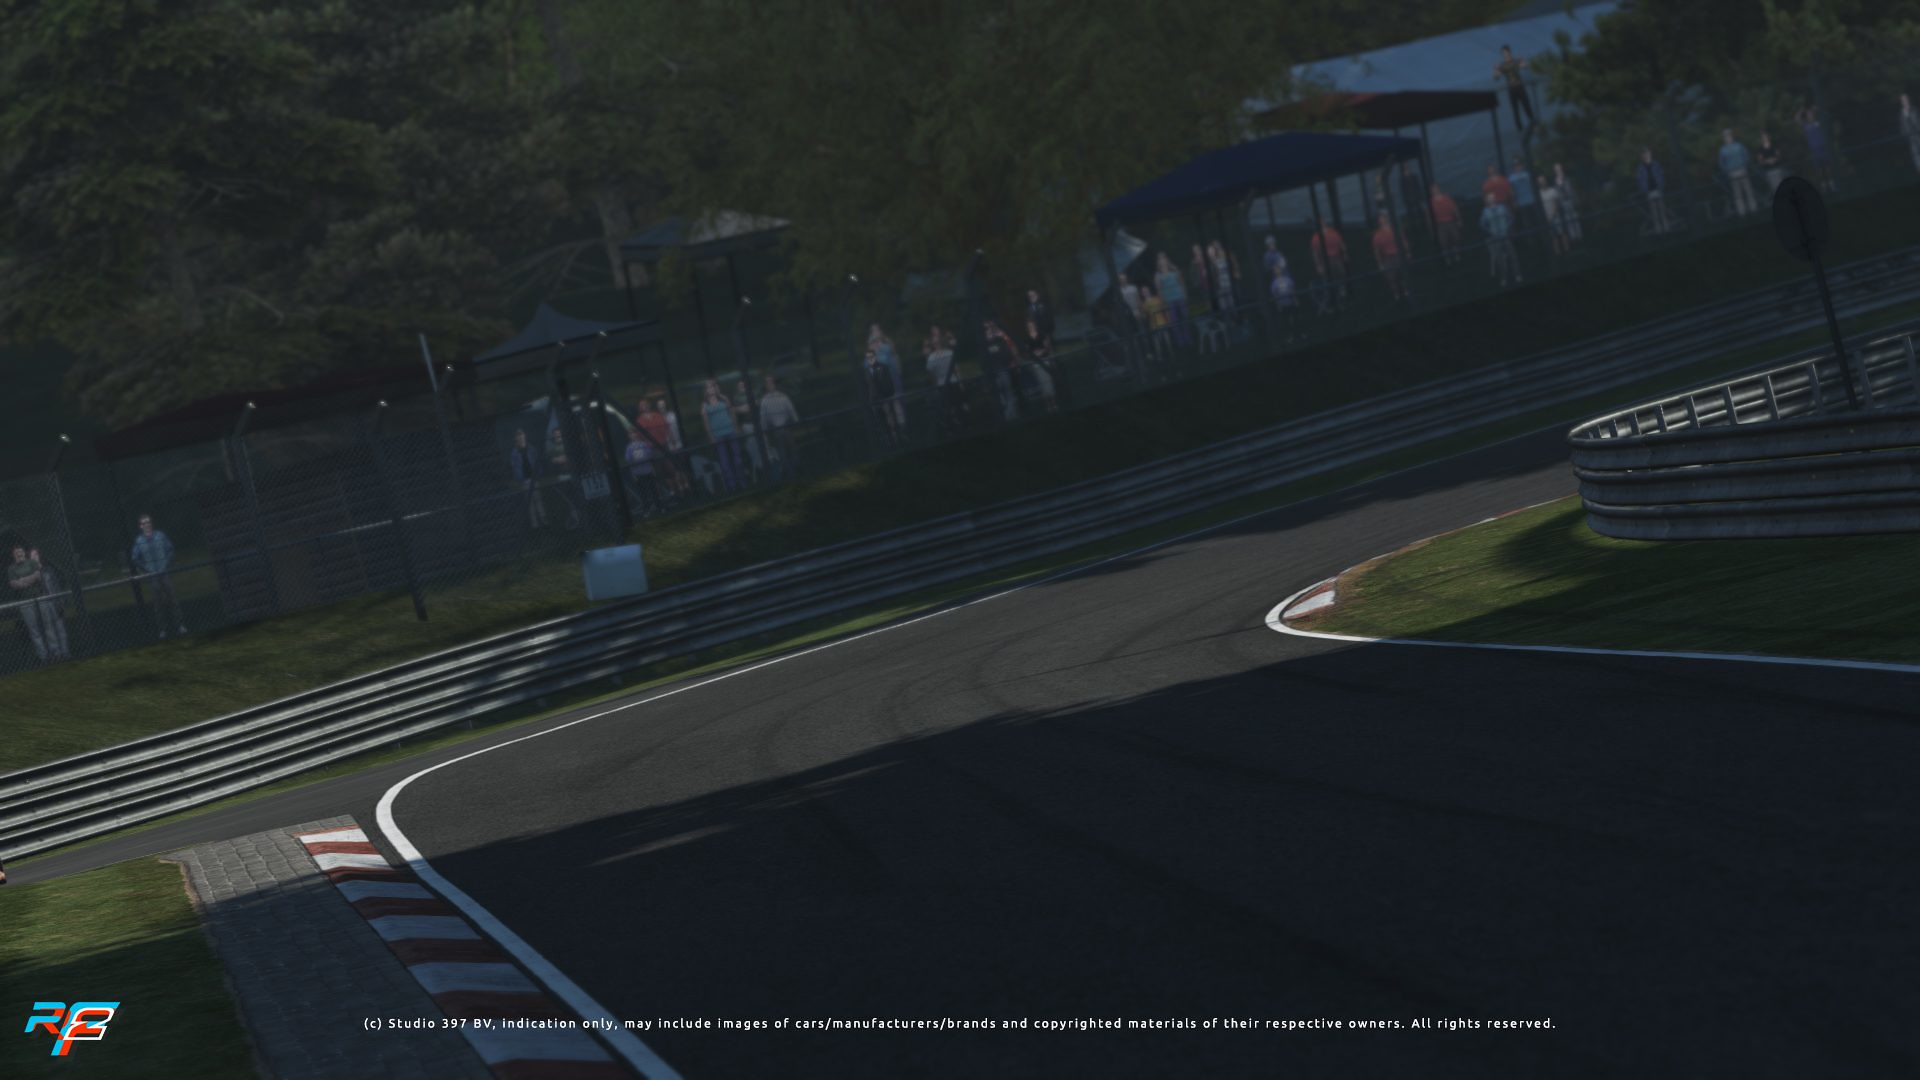 nordschleife_guide_21-1920x1080